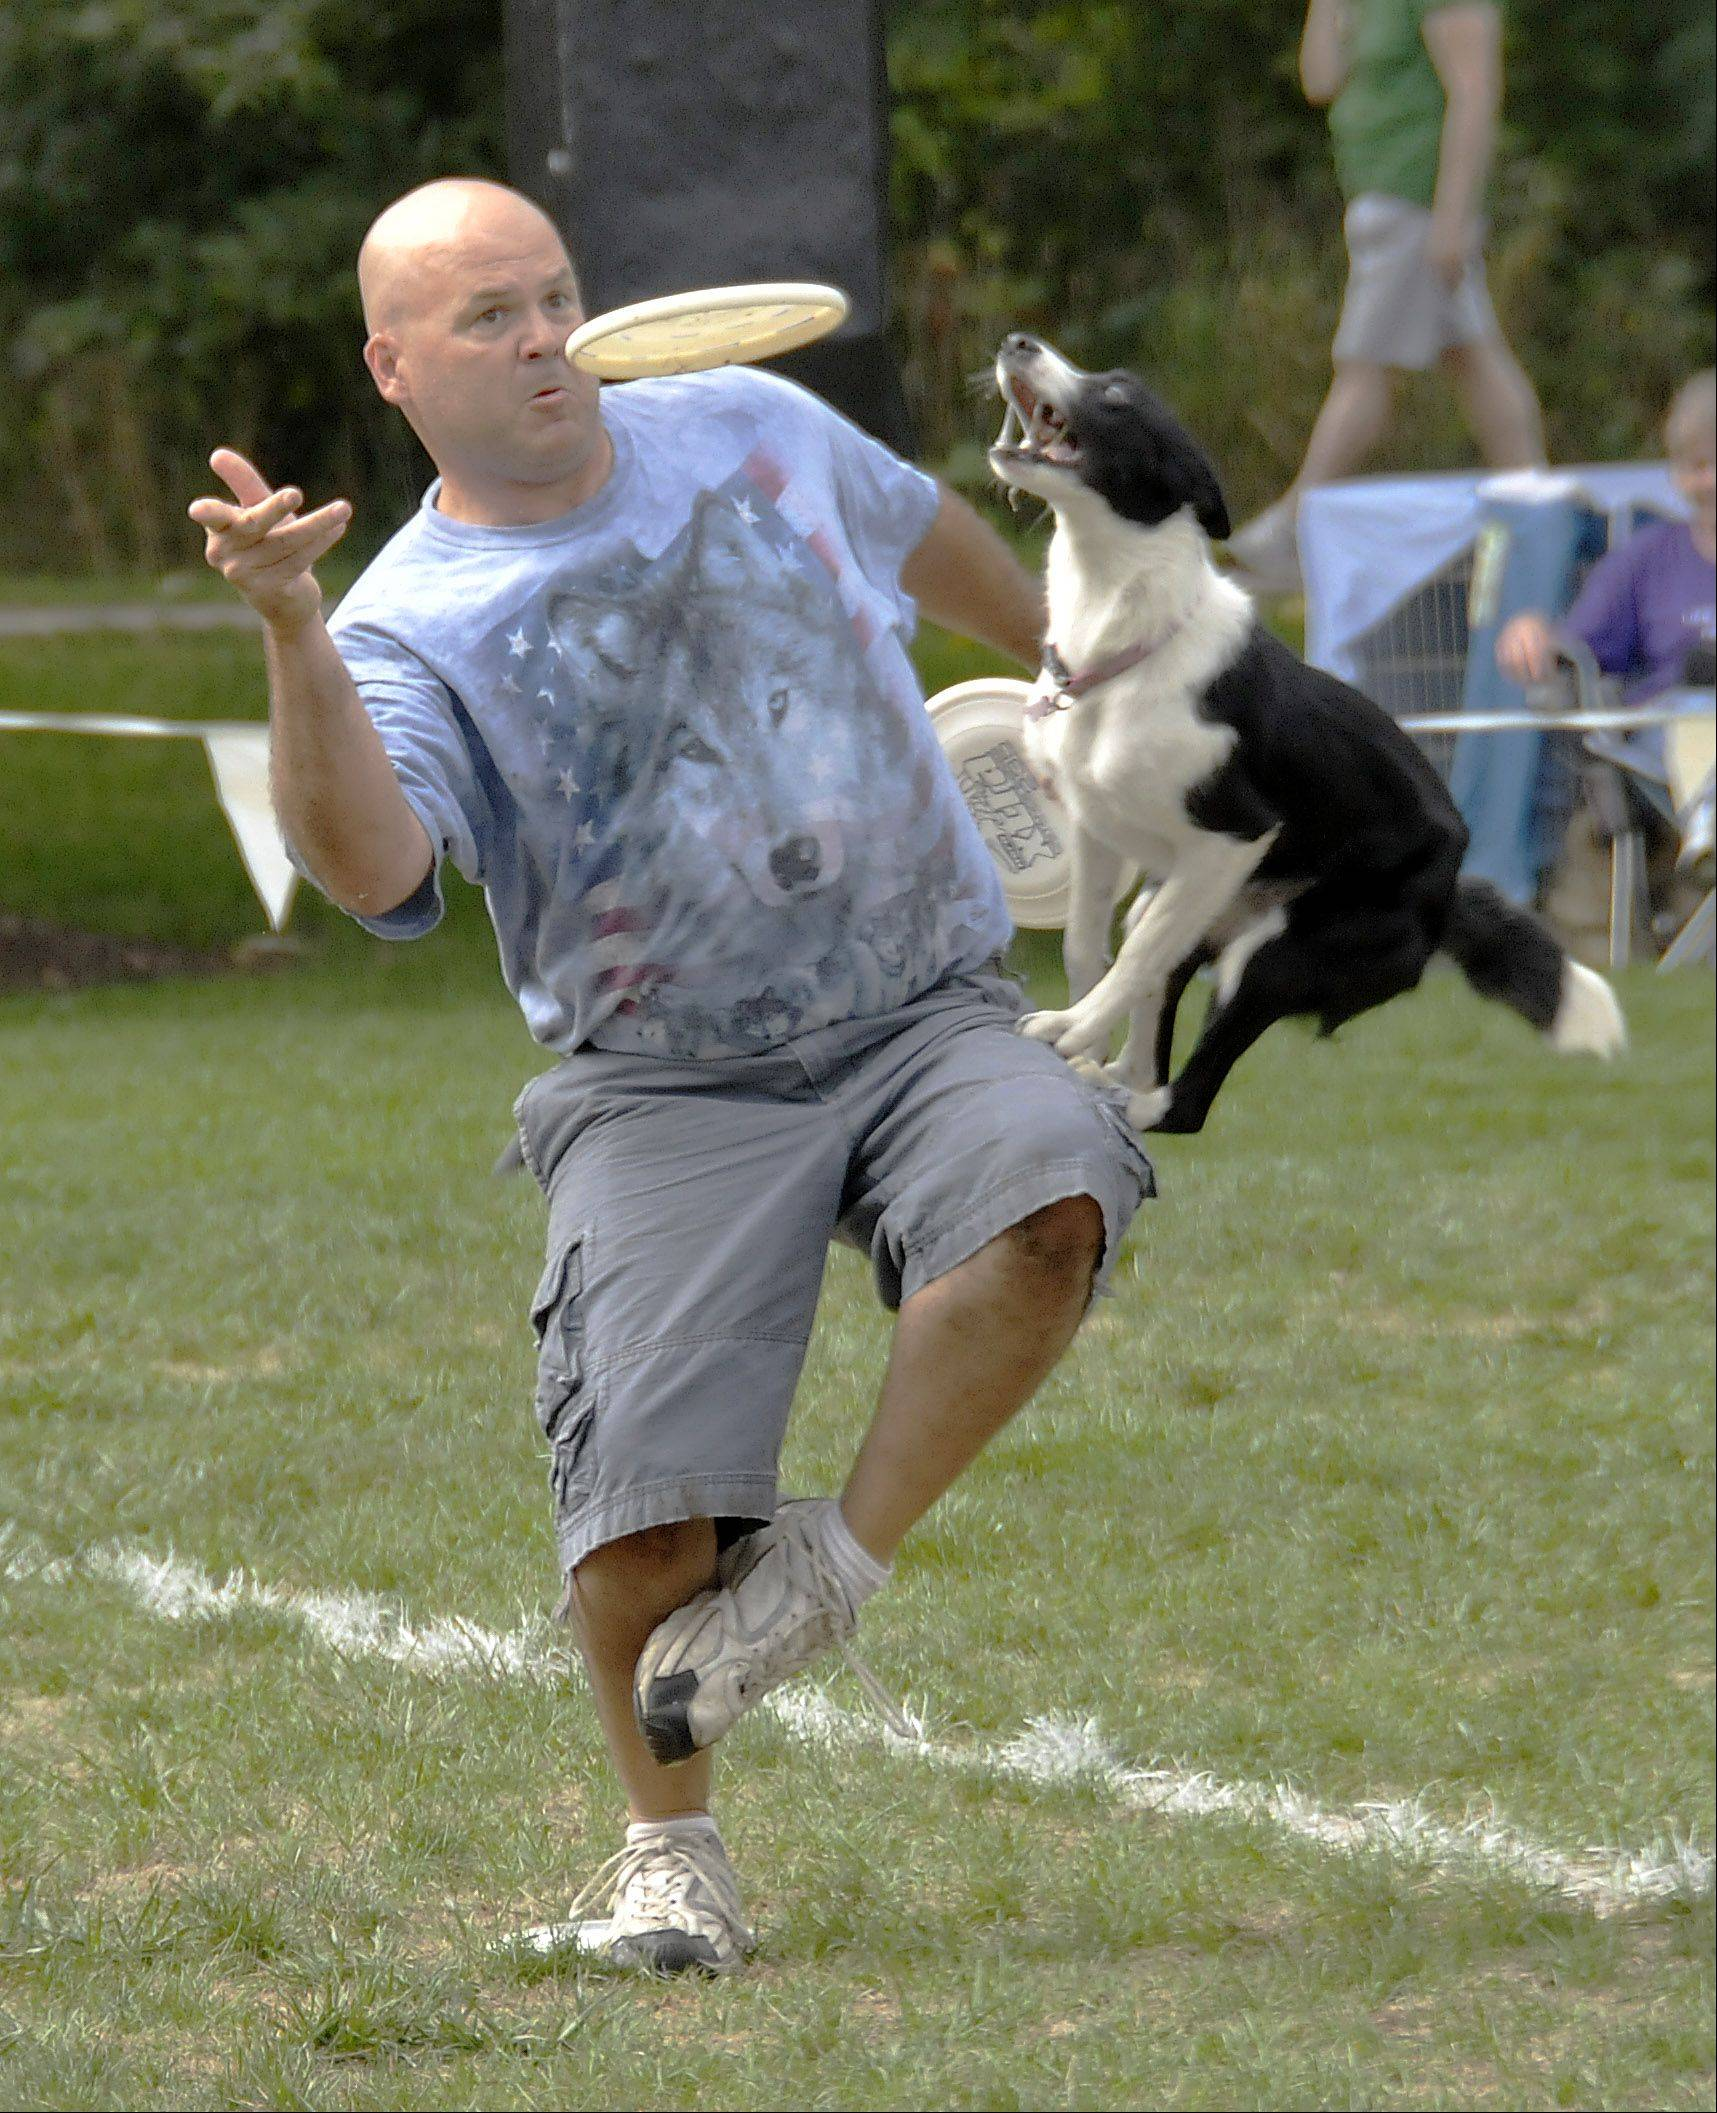 Riley, a Border Collie, jumps up to grab a flying disc tossed by his owner, Mark Faragoi, of Plainfield during Sunday's Ashley Whippet Invitational in Naperville, which was one of the events during Naperville's Last Fling festival.